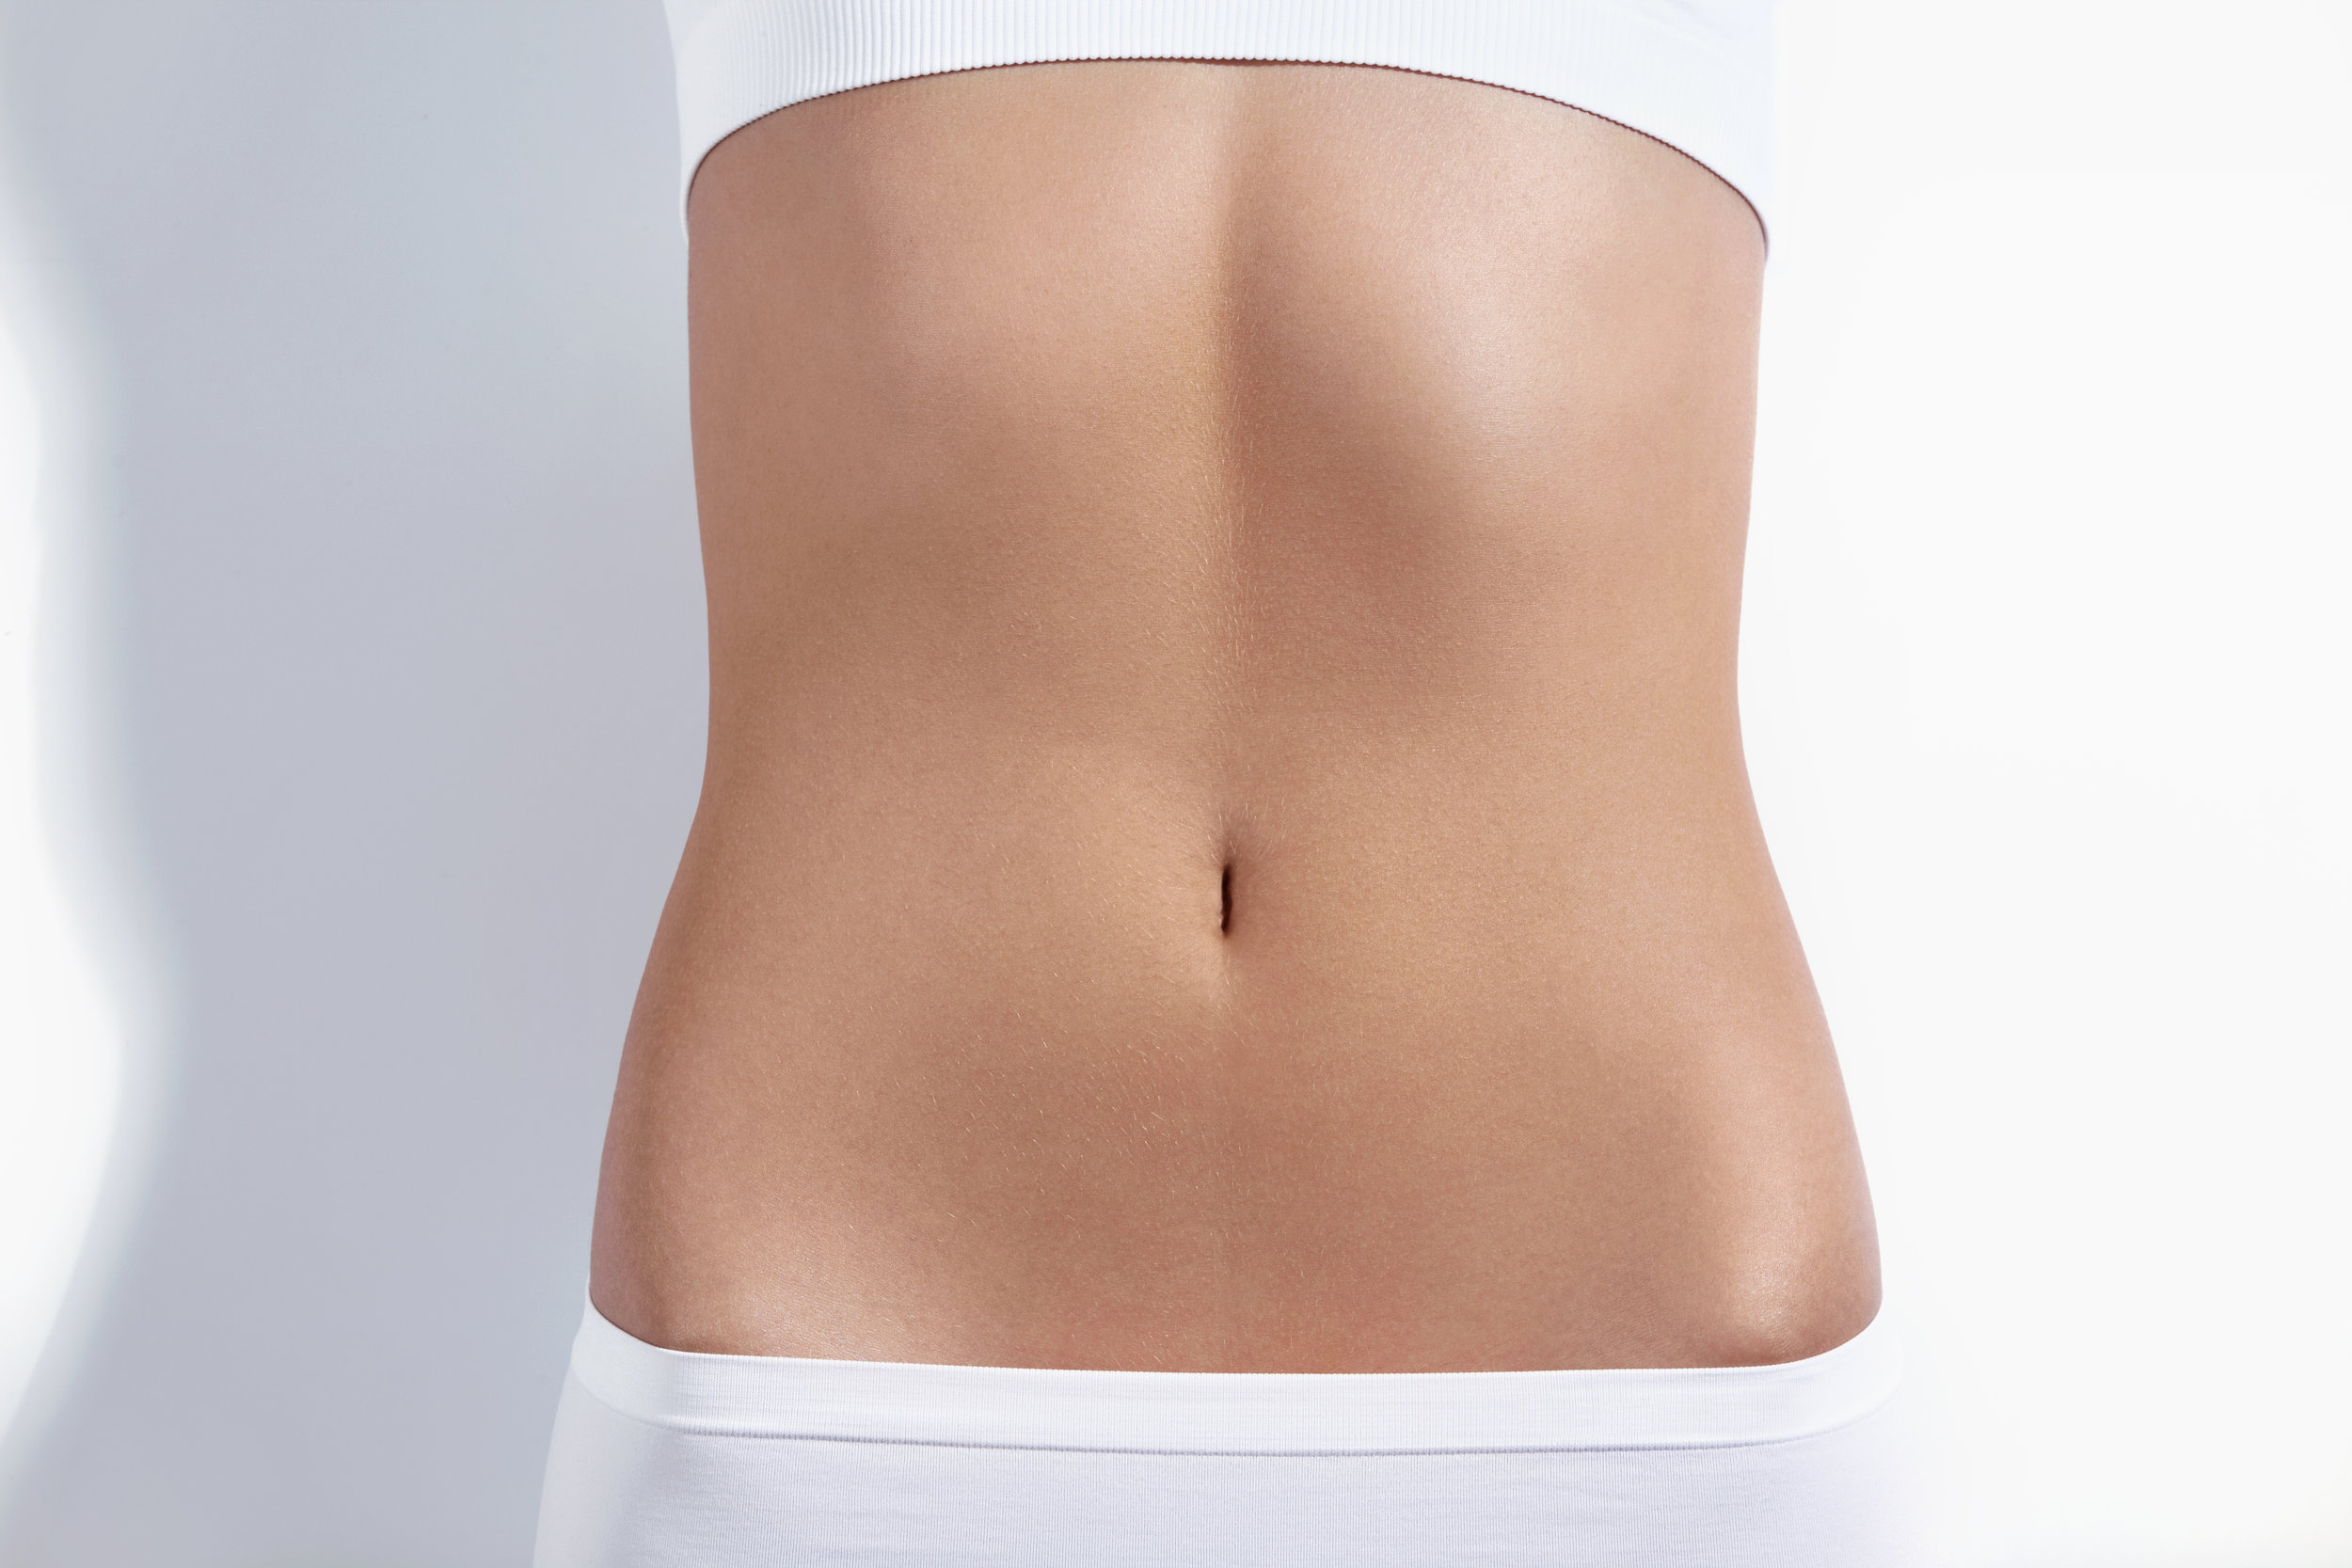 Liposuction - One of the most common techniques in plastic surgery is Liposuction. Liposuction can treat areas such as the chin and jawline, bra roll, flanks, hips, thighs, and abdomen.Surgery:  OutpatientEst. Surgery Time: 1-3 HourPost-surgical: Compression garment for 4 weekEst. Recovery Time: Resume normal activities in 4 weeks